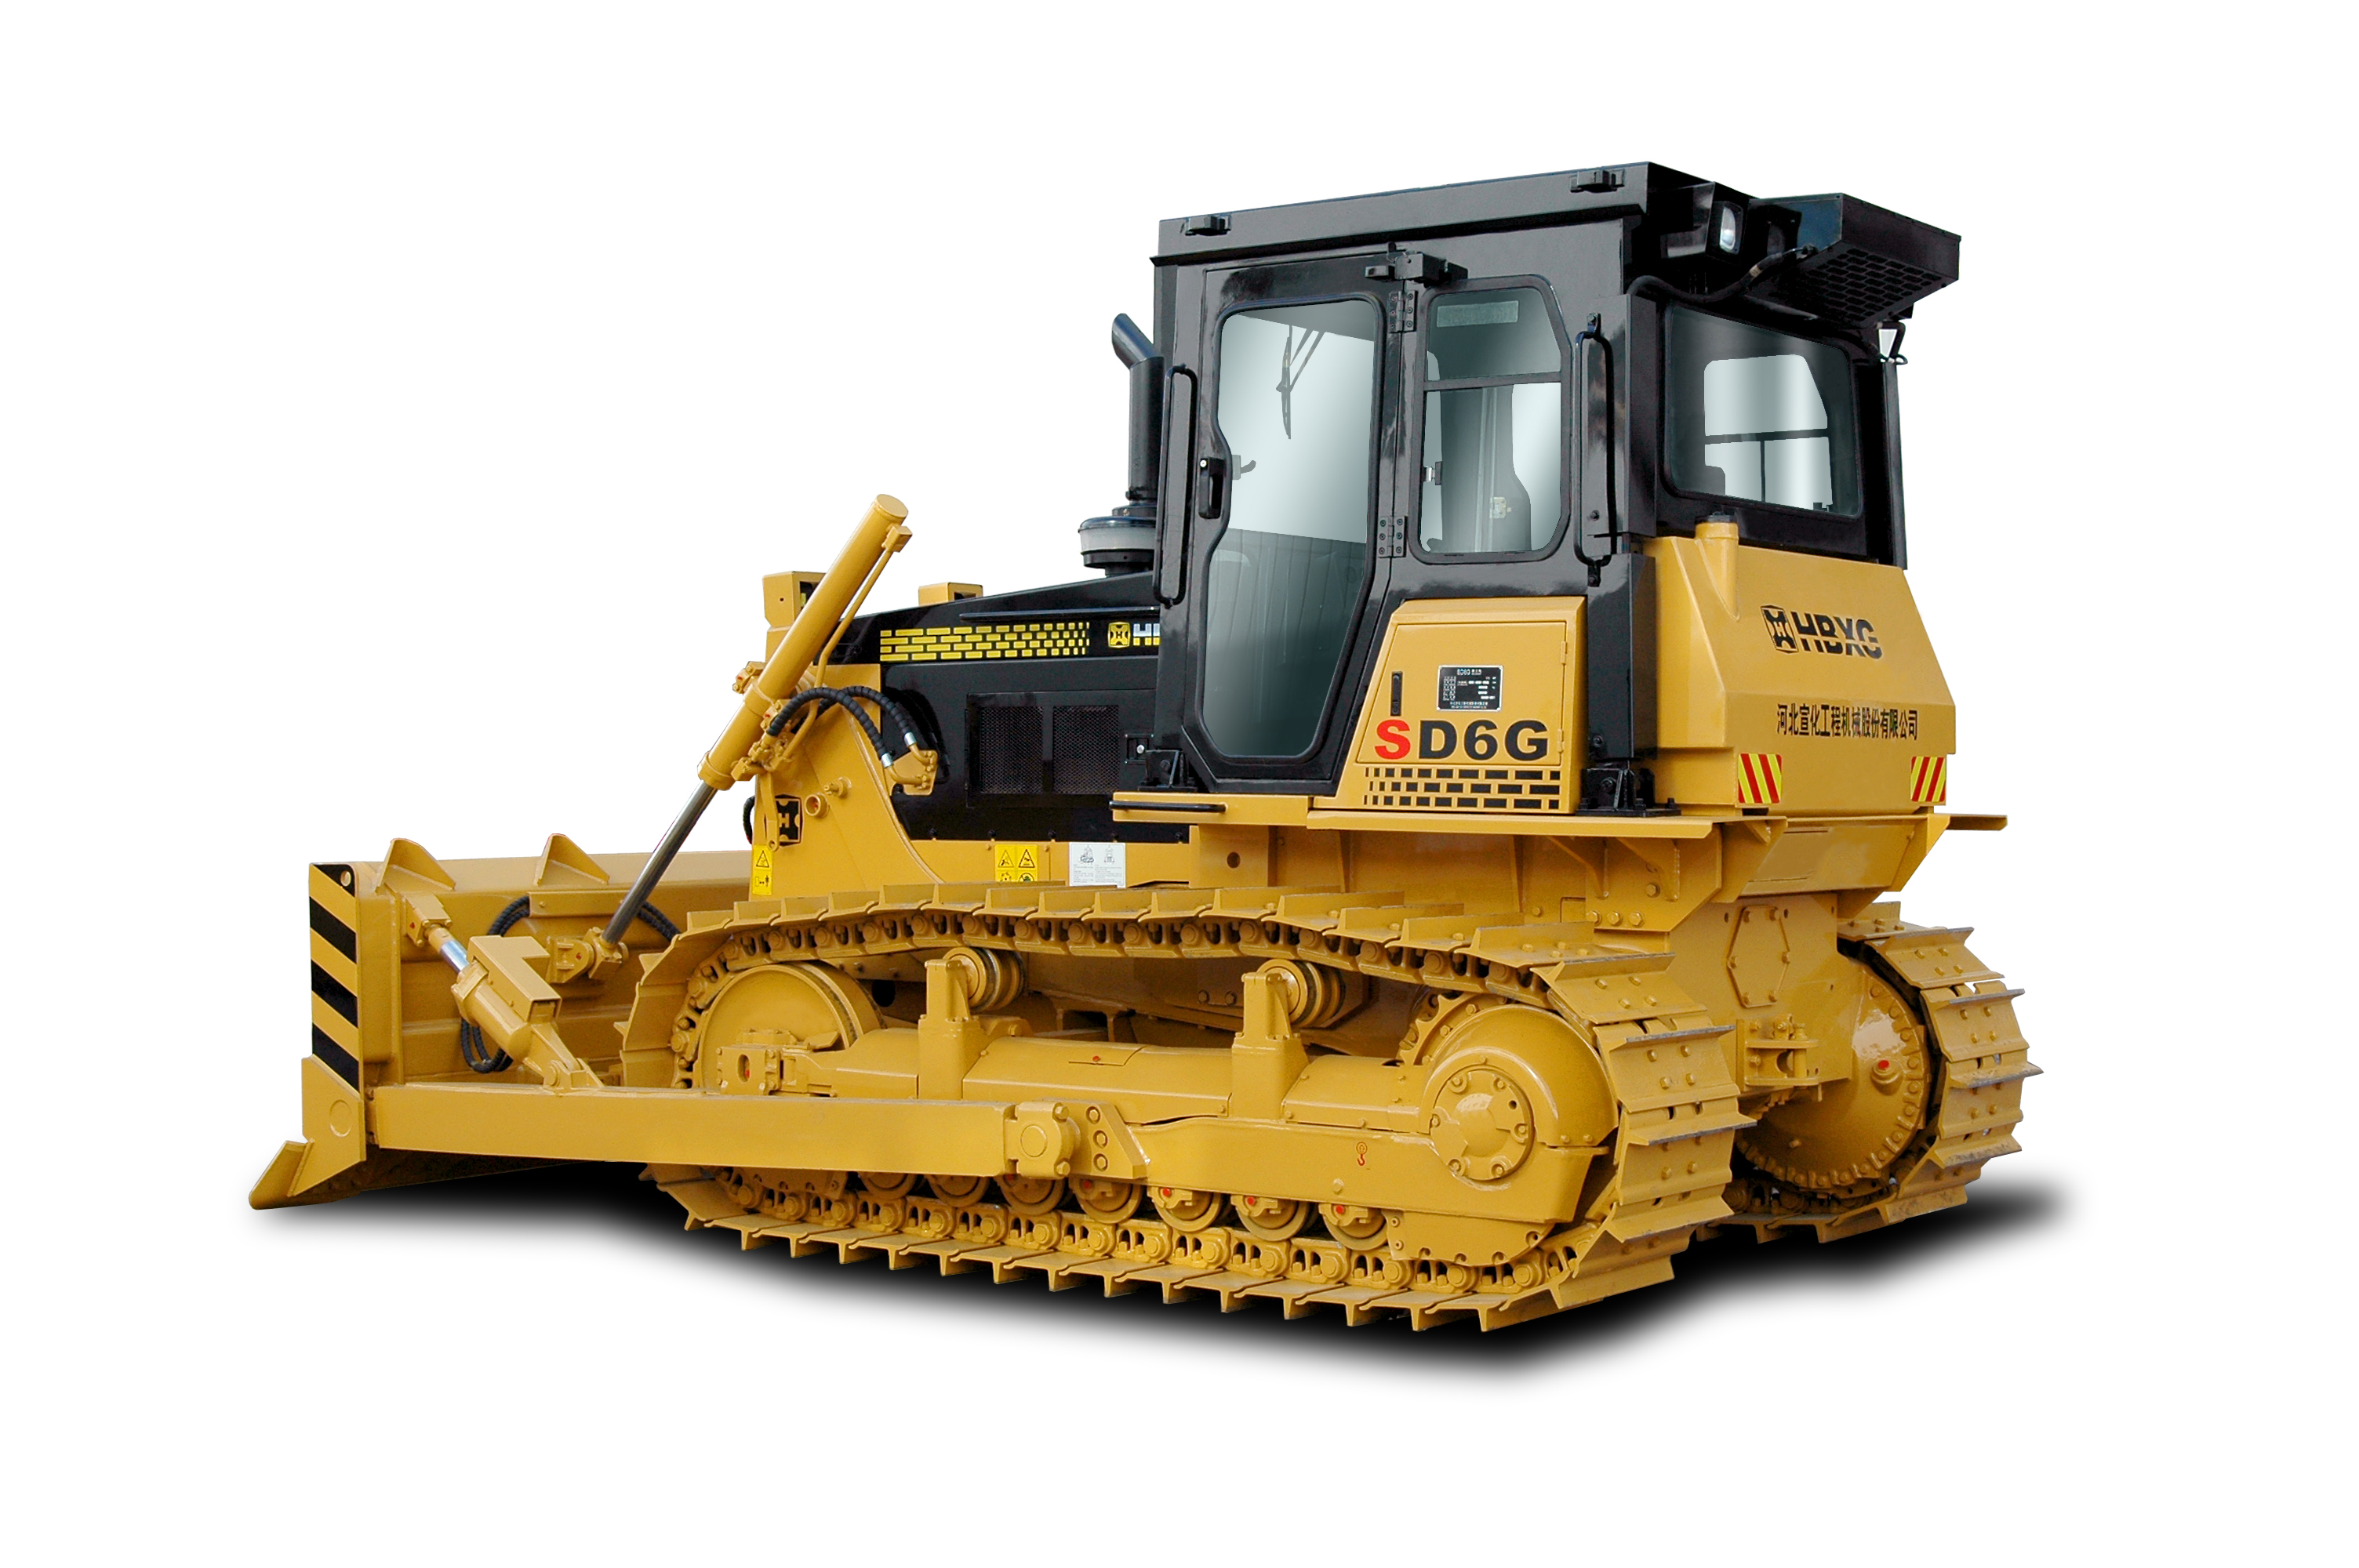 SD6G BULLDOZER